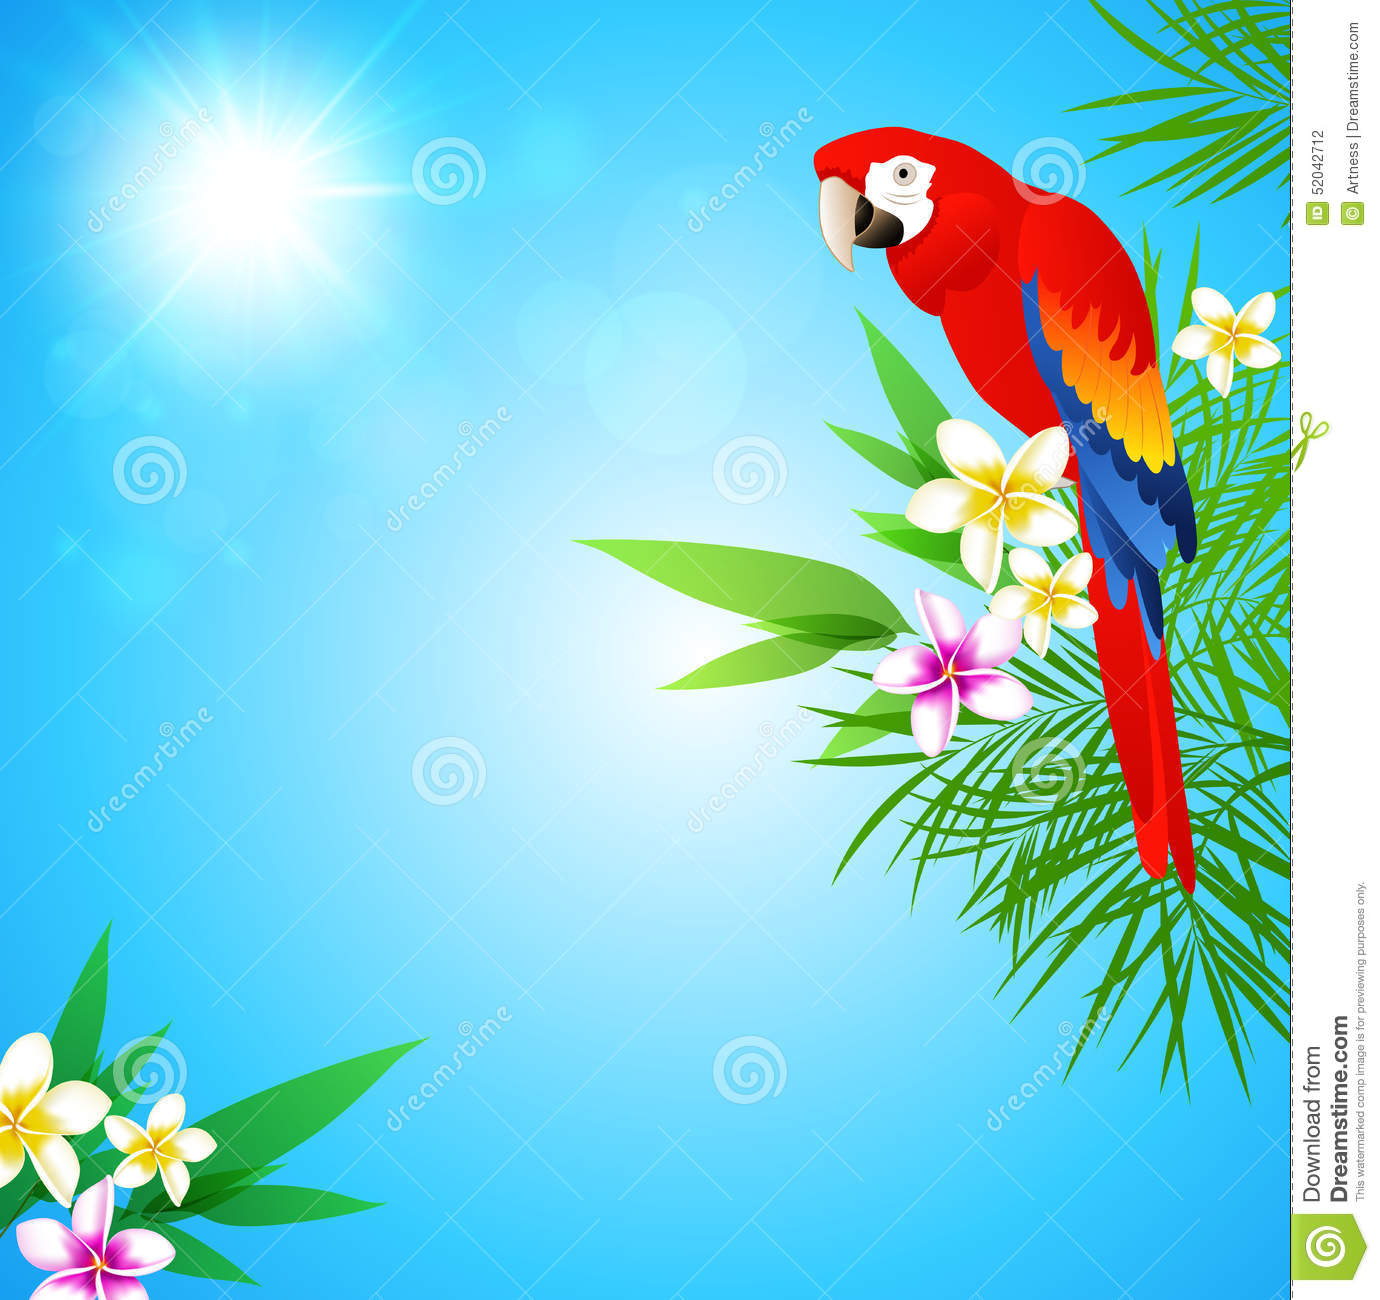 Animated Hd Wallpapers 1080p Free Download Tropical Background With Red Parrot Stock Vector Image